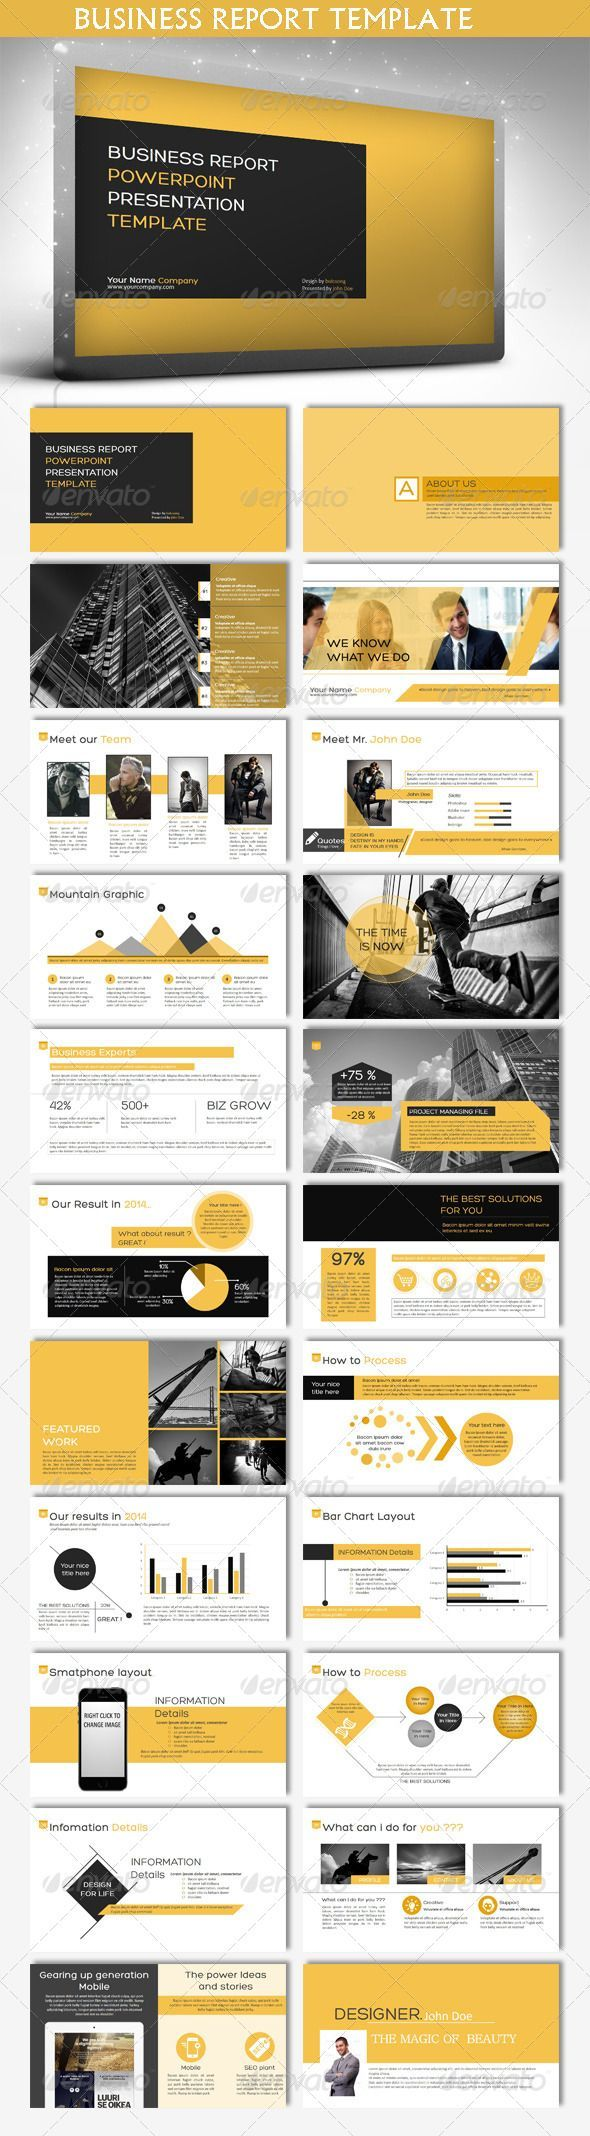 Business Report Powerpoint Template (Powerpoint Templates) #Powerpoint…